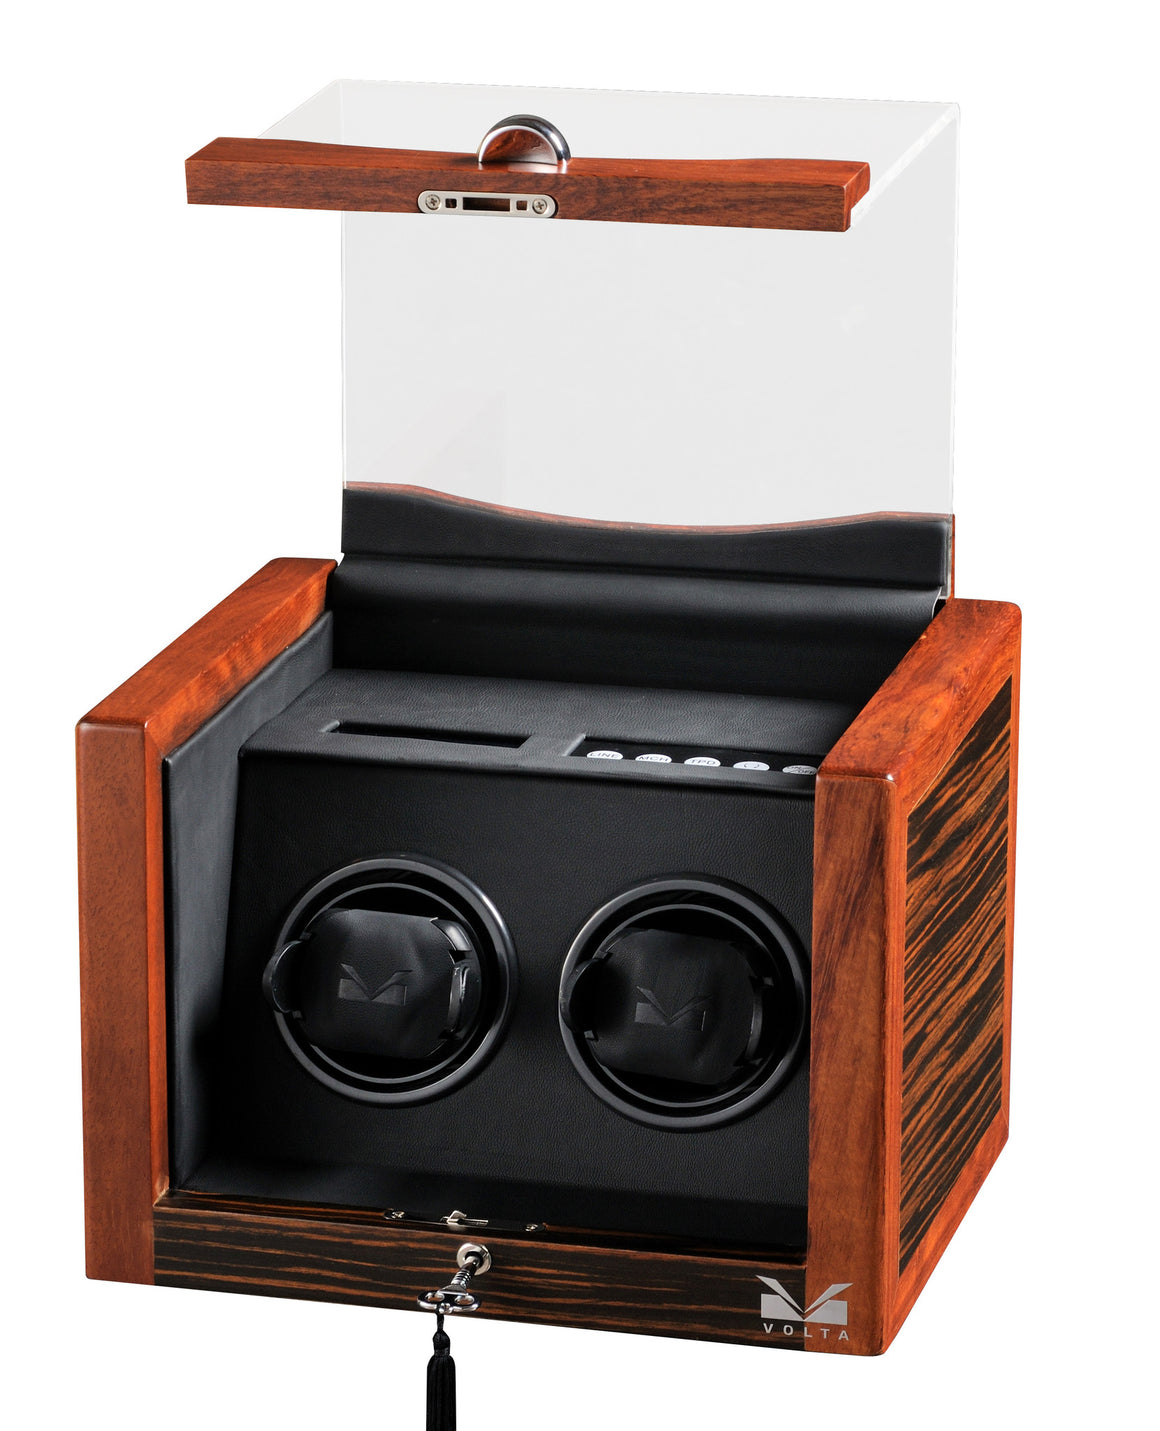 Volta Teak Wood Double Watch Winder - Watch Box Co. - 2